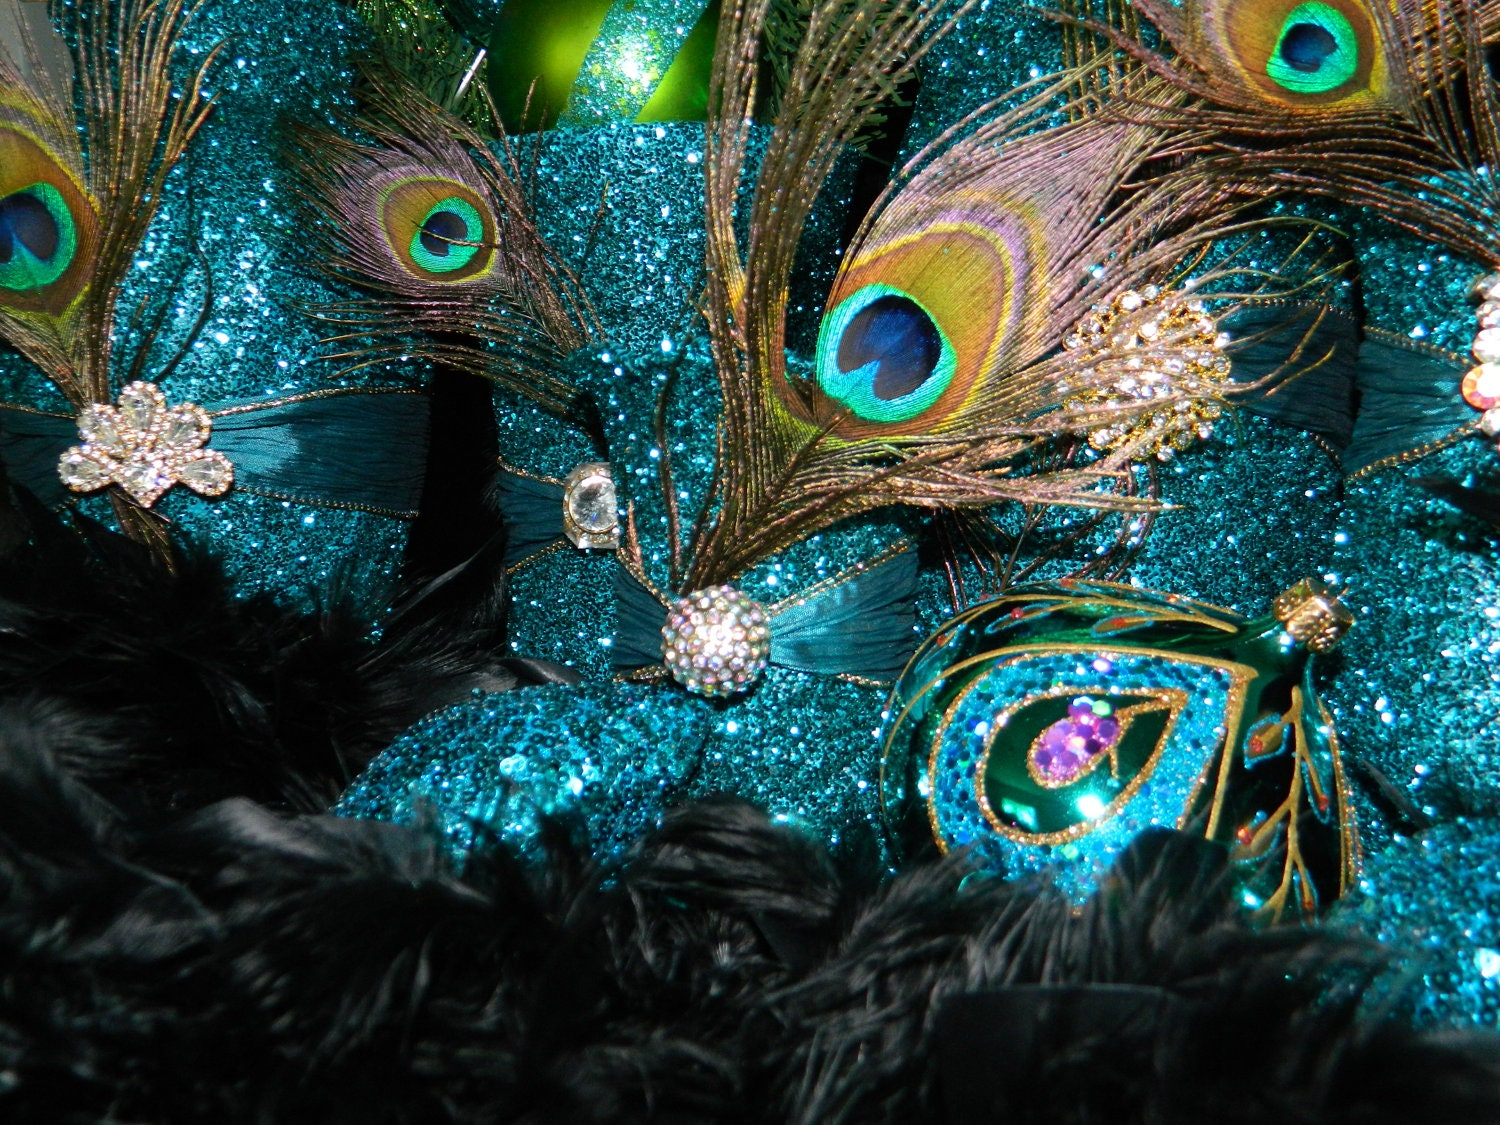 Peacock Themed Christmas Decorations